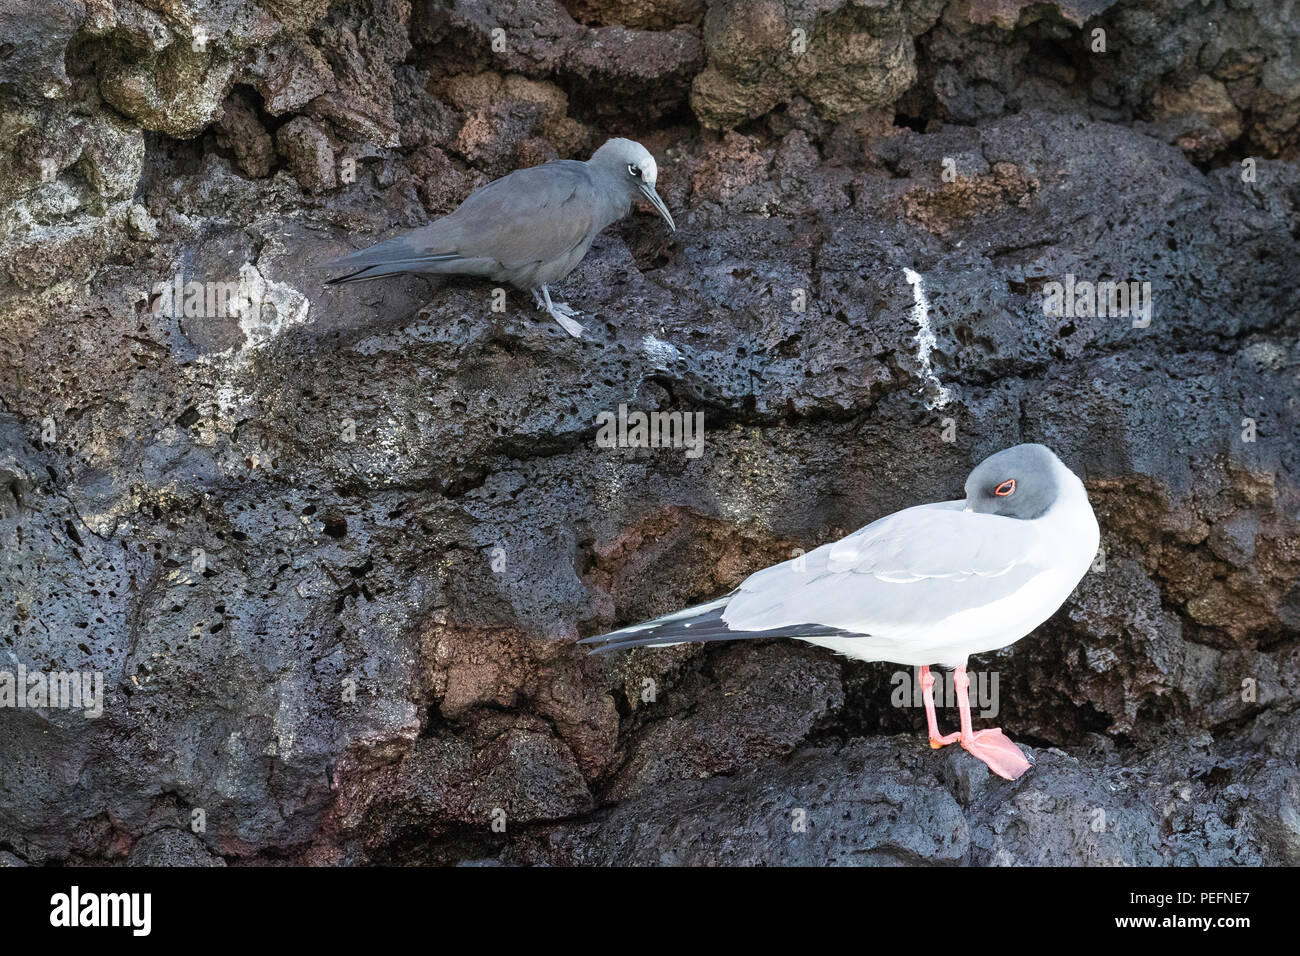 Adult Swallow-tailed gull, Creagrus furcatus, with a brown noddy, Anous stolidus, Floreana Island, Galápagos, Ecuador. - Stock Image